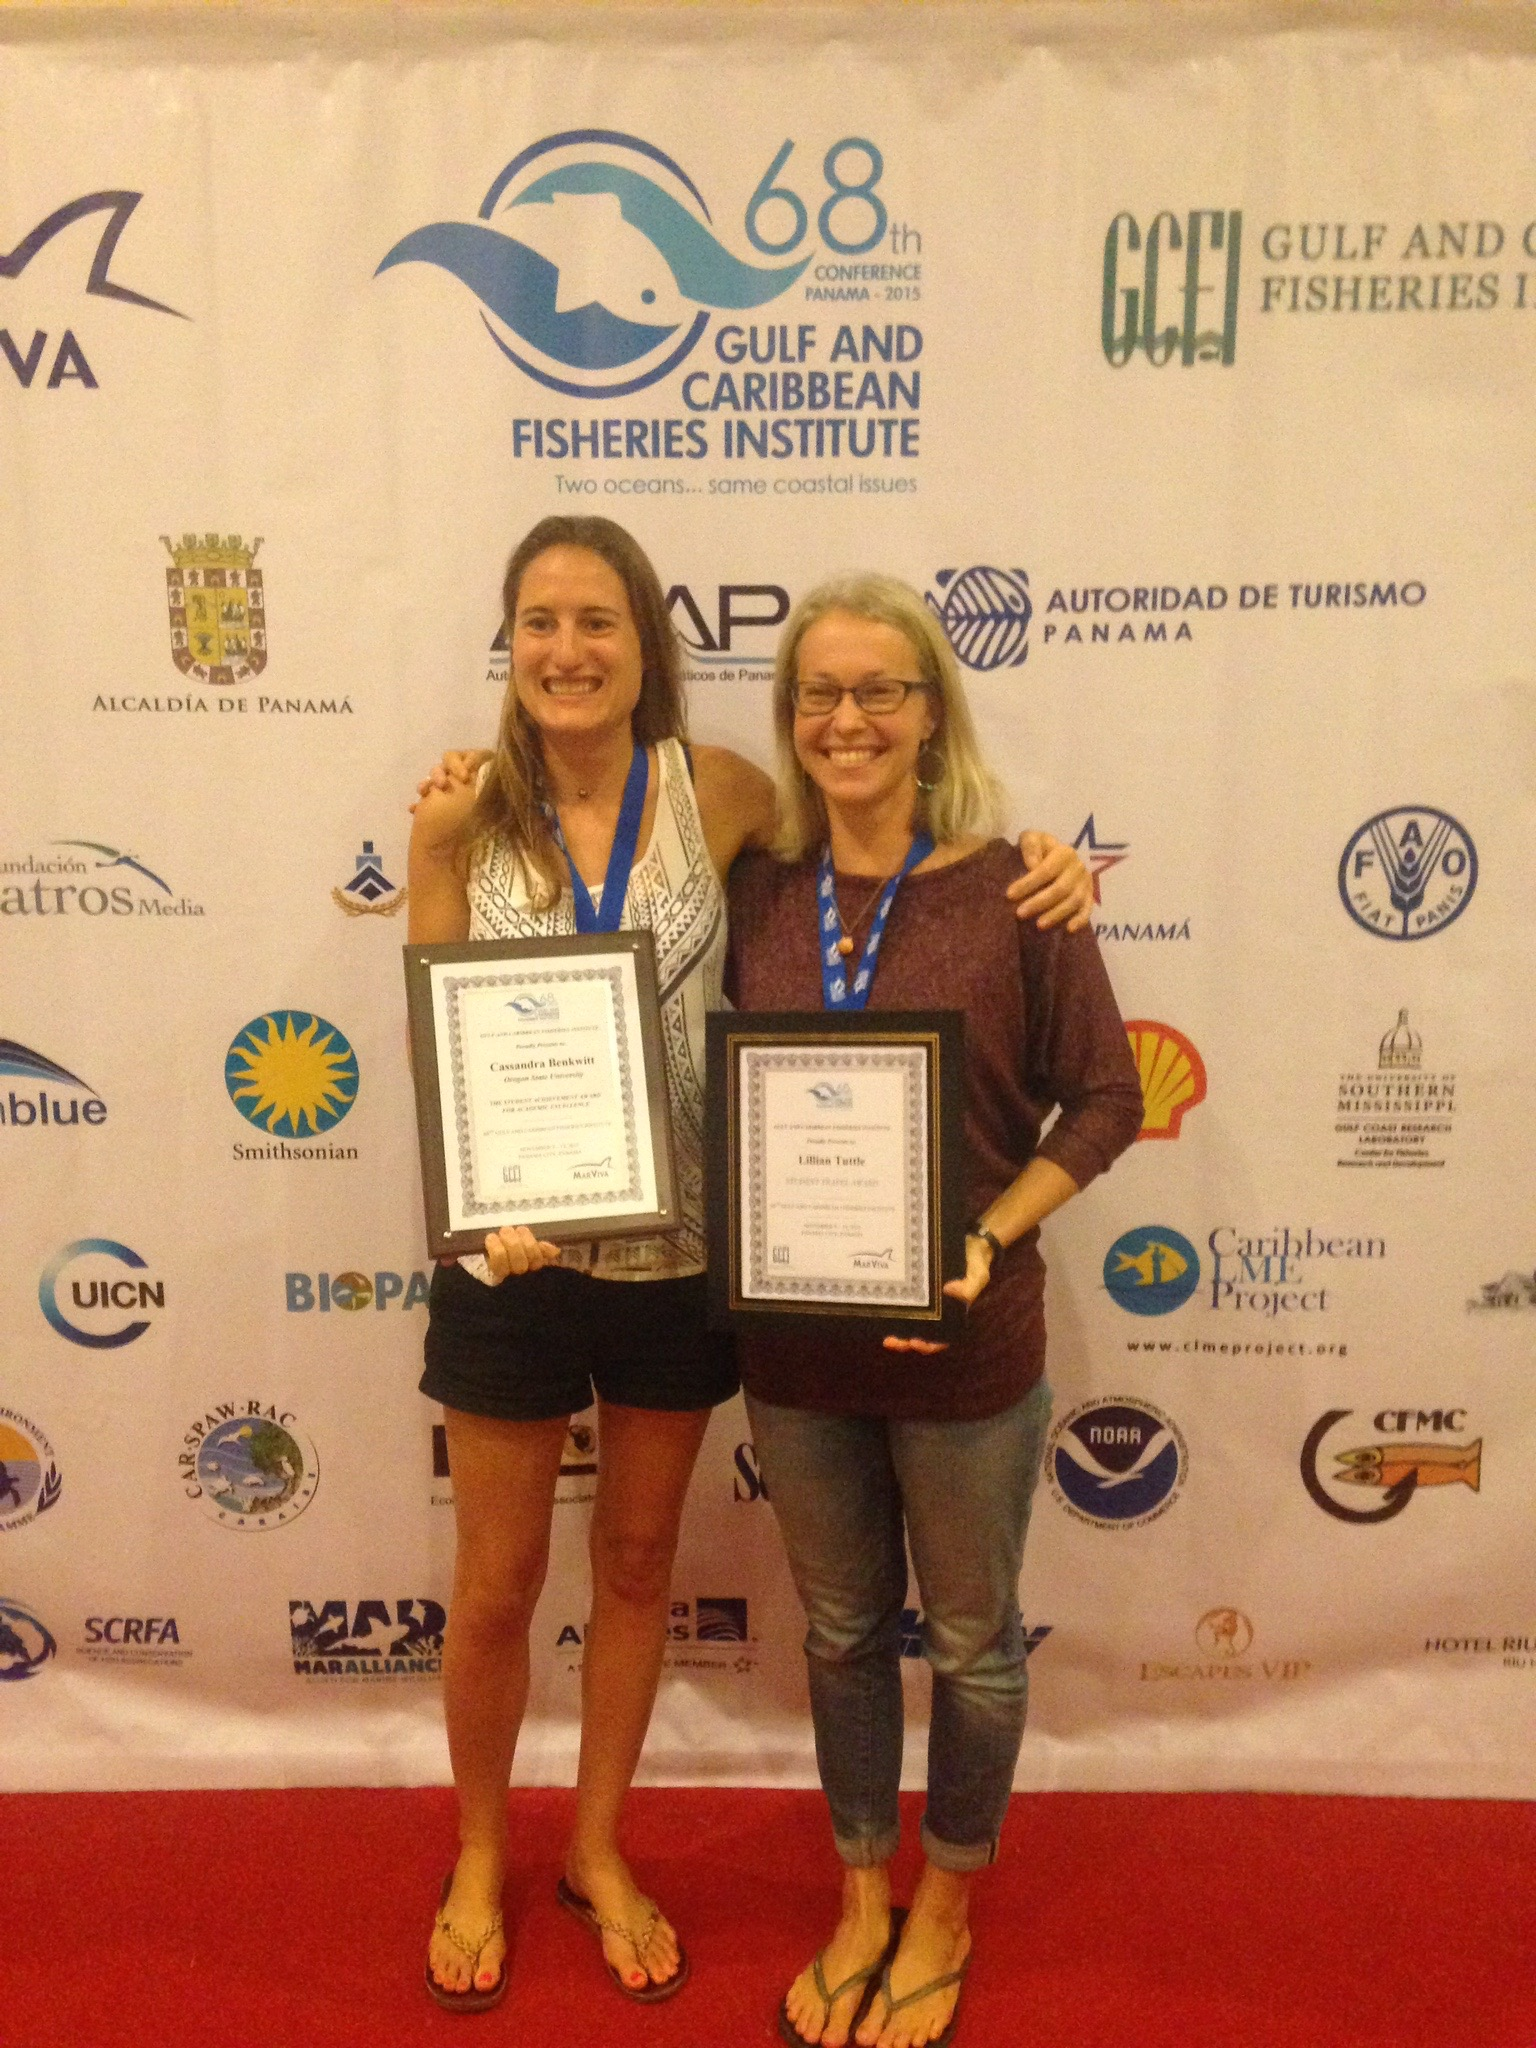 Casey Benkwitt, my lab mate, and I receiving honors at the 2015 Gulf and Caribbean Fisheries Institute meeting in Panama City, Panama.